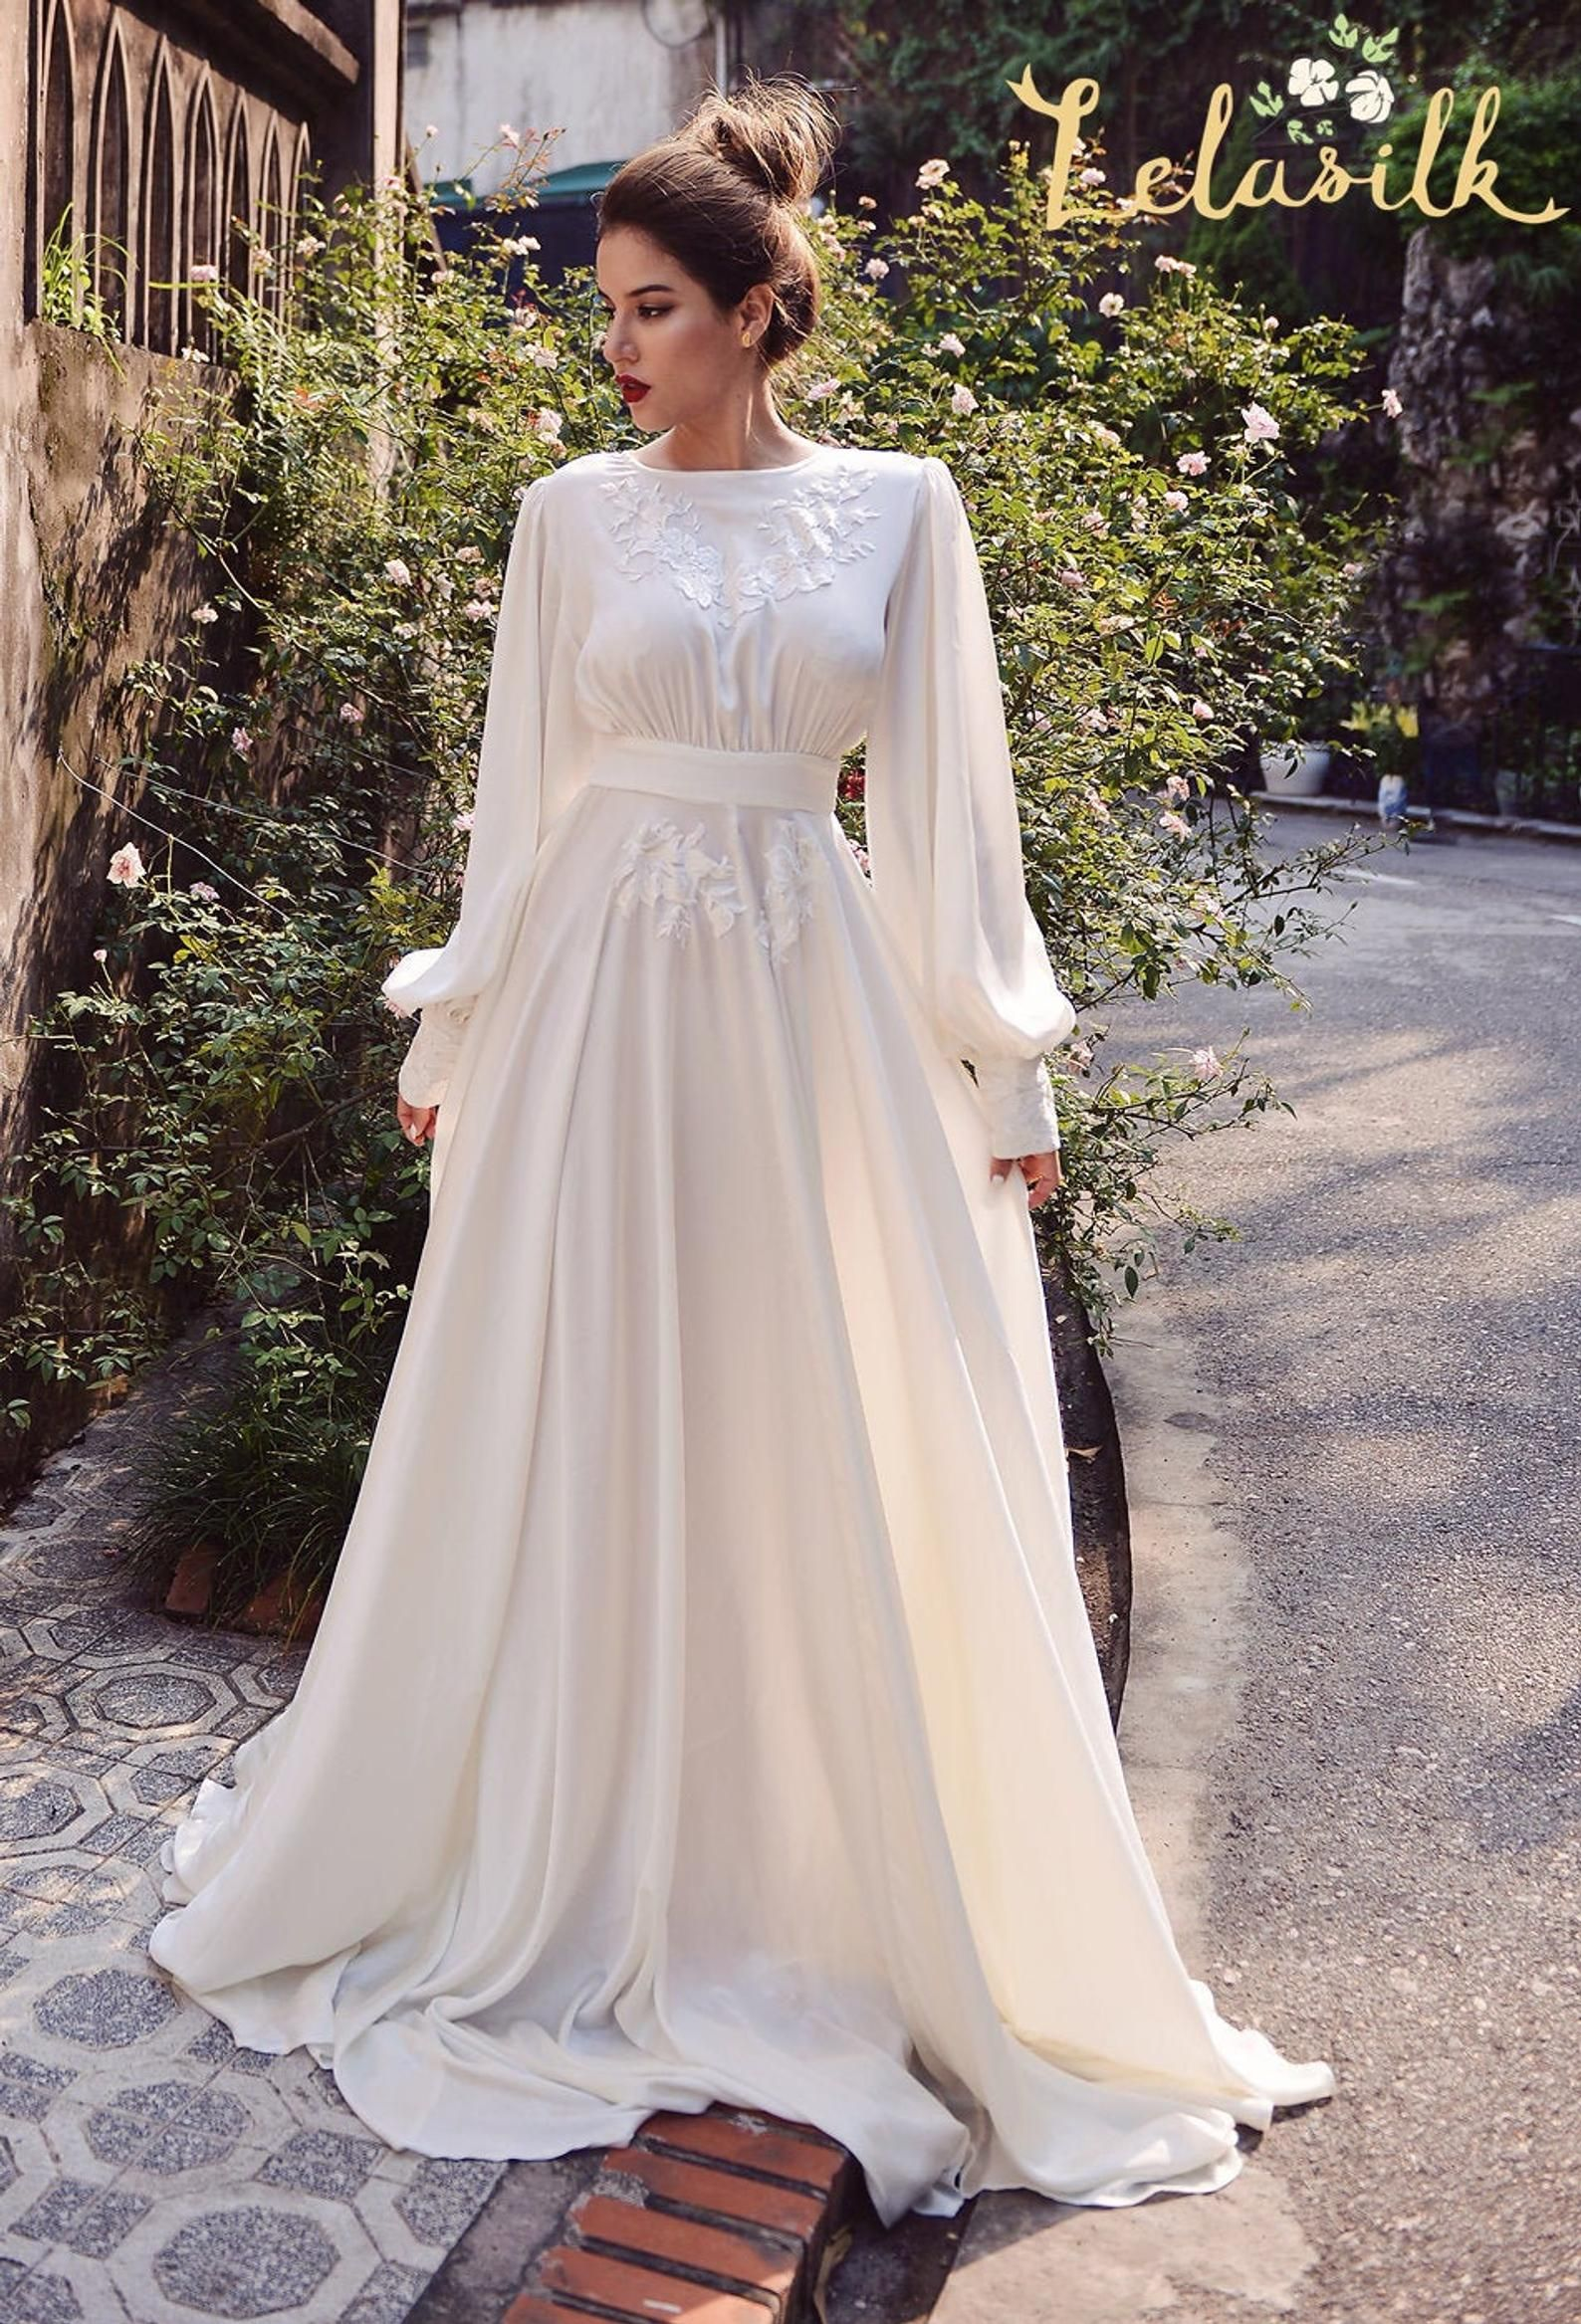 Silk Wedding Dress Embellished Lace Wedding Dress Ivory Etsy In 2020 Embellished Lace Wedding Dress Silk Wedding Dress Wedding Dress Long Sleeve